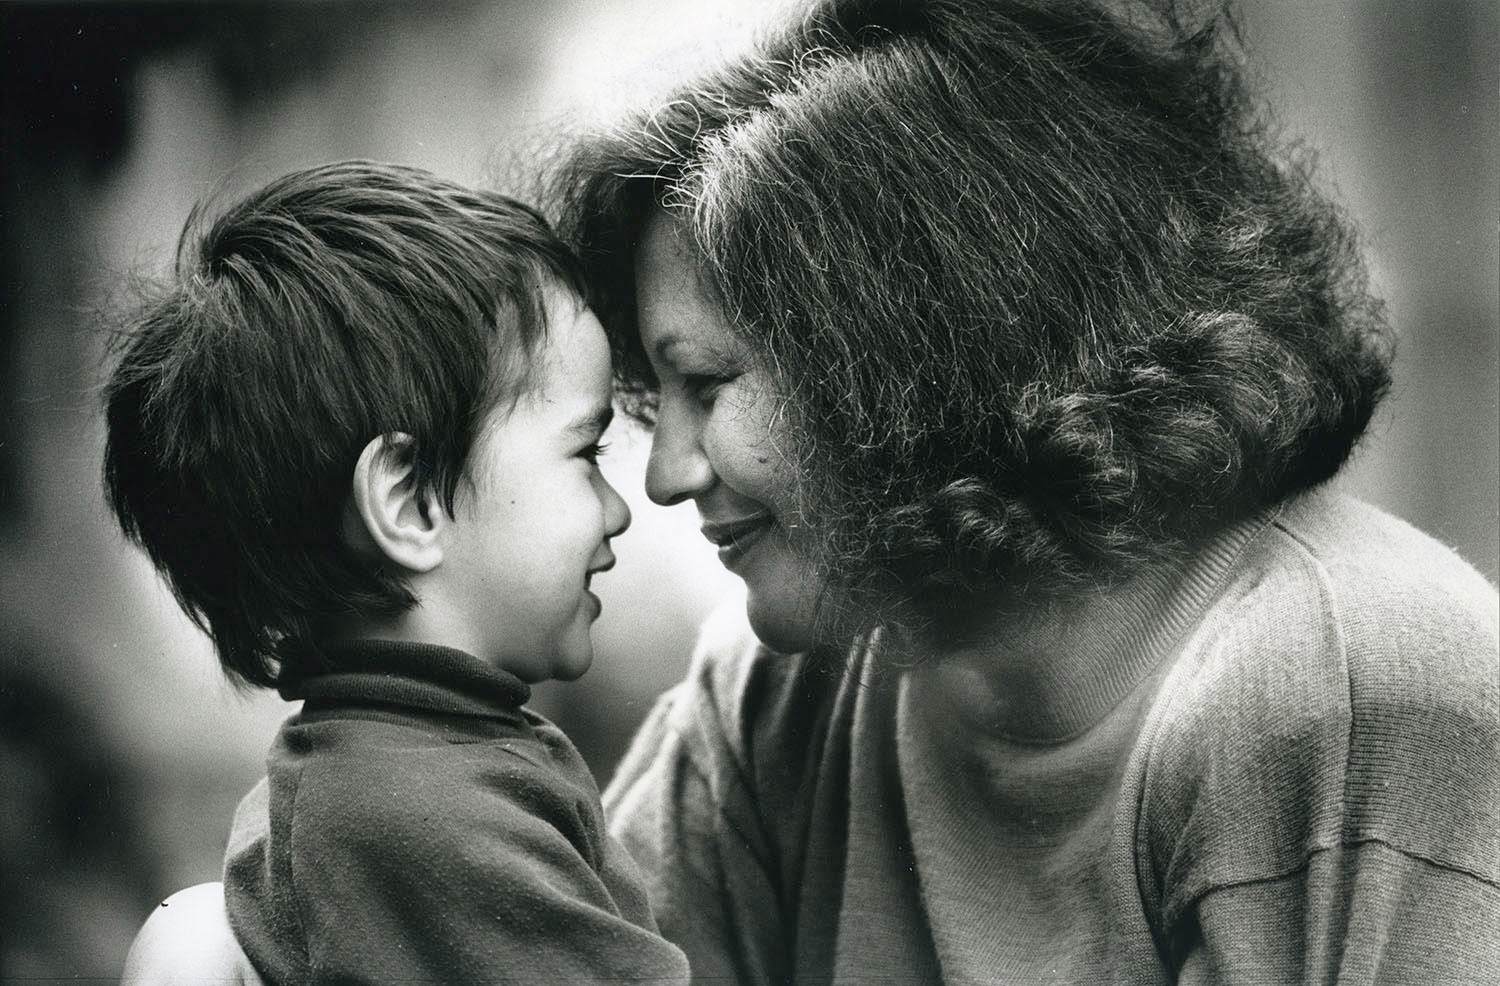 "Maori filmmaker Merata Mita, here shown with one of her children, is profiled in ""Merata: How Mum Decolonised The Screen, directed by her son, Heperi Mita. It is an official selection in the Documentary Premieres program of the 2019 Sundance Film Festival. (Photo courtesy New Zealand Herald/Sundance Institute)"